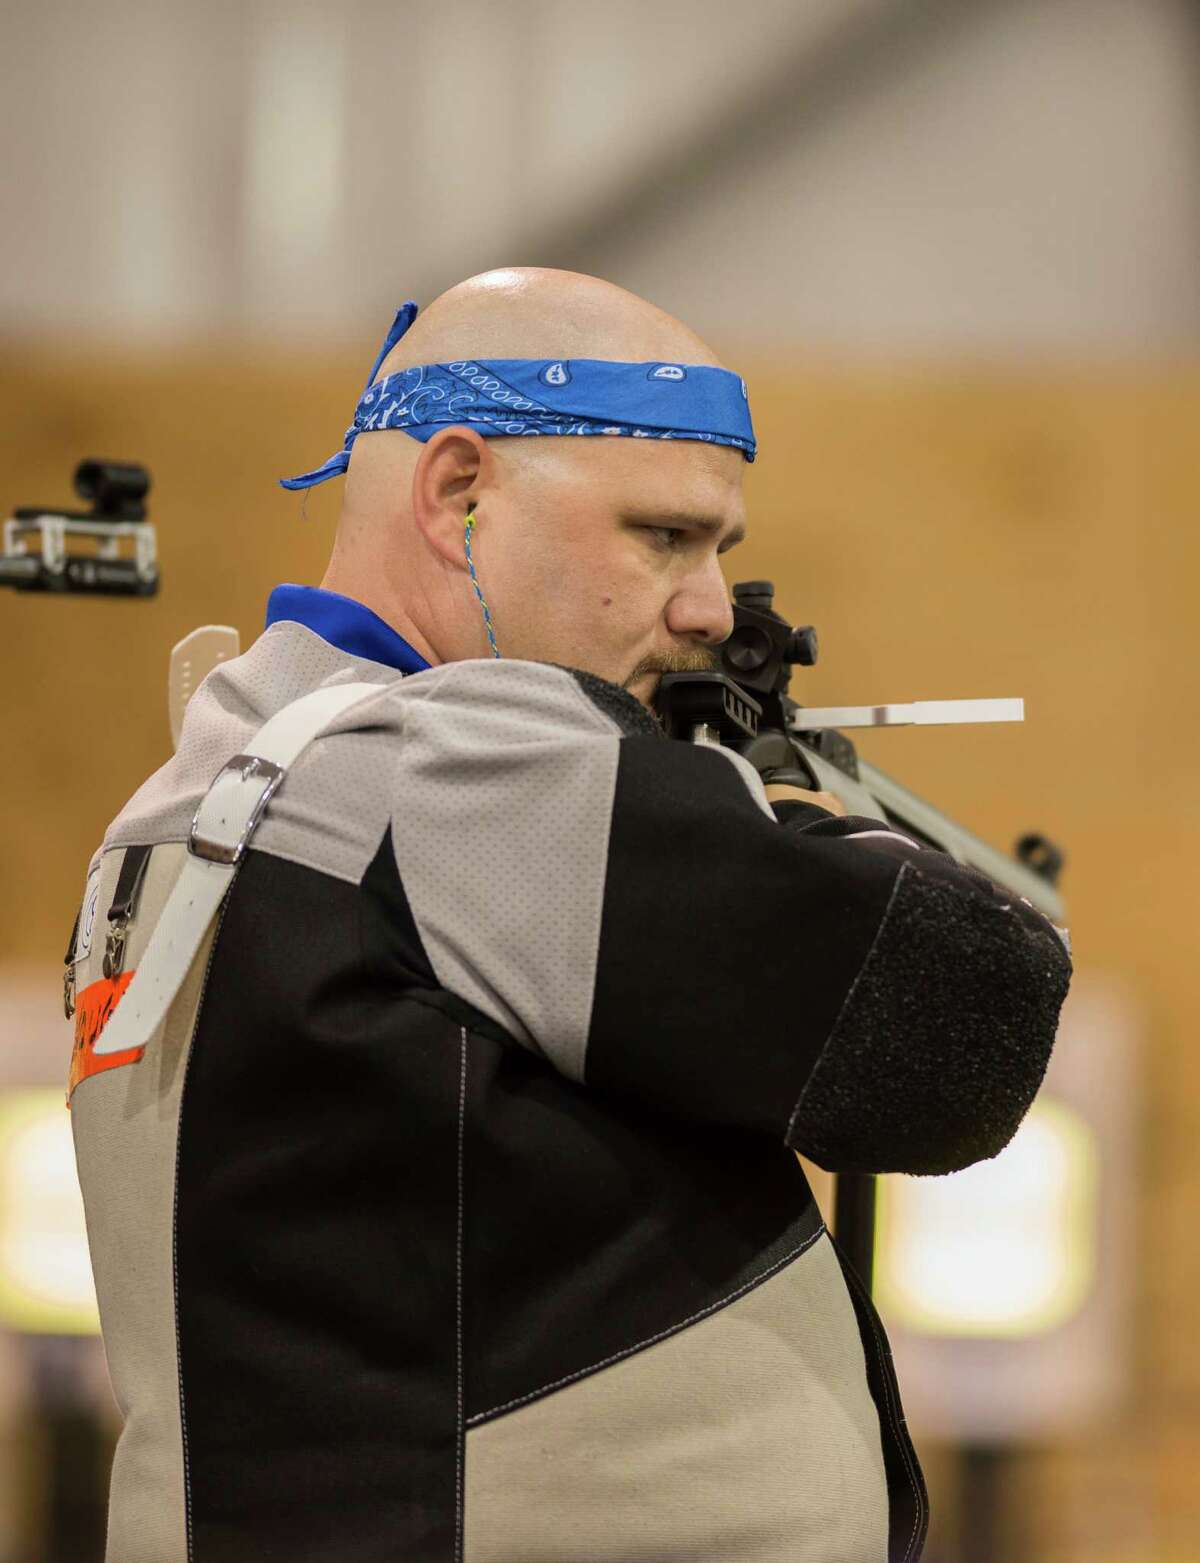 Retired U.S. Air Force Tech Sgt. Timothy McDonough prepares to sight in at the 2015 Department of Defense (DoD) Warrior Games shooting competition at Lejeune Field, Quantico, Va., June 26, 2015. The Warrior Games, founded in 2010, is a Paralympic-style competition that features eight adaptive sports for wounded, ill, and injured service members and veterans from the U.S. Army, Marine Corps, Navy/Coast Guard, Air Force, Special Operations Command, and the British Armed Forces. This year marks the first time the DoD takes responsibility for operational planning and coordination of the event, in which approximately 250 athletes are expected to compete. (U.S. Marine Corps photo by Lance Cpl. Timothy A. Turner/Released)